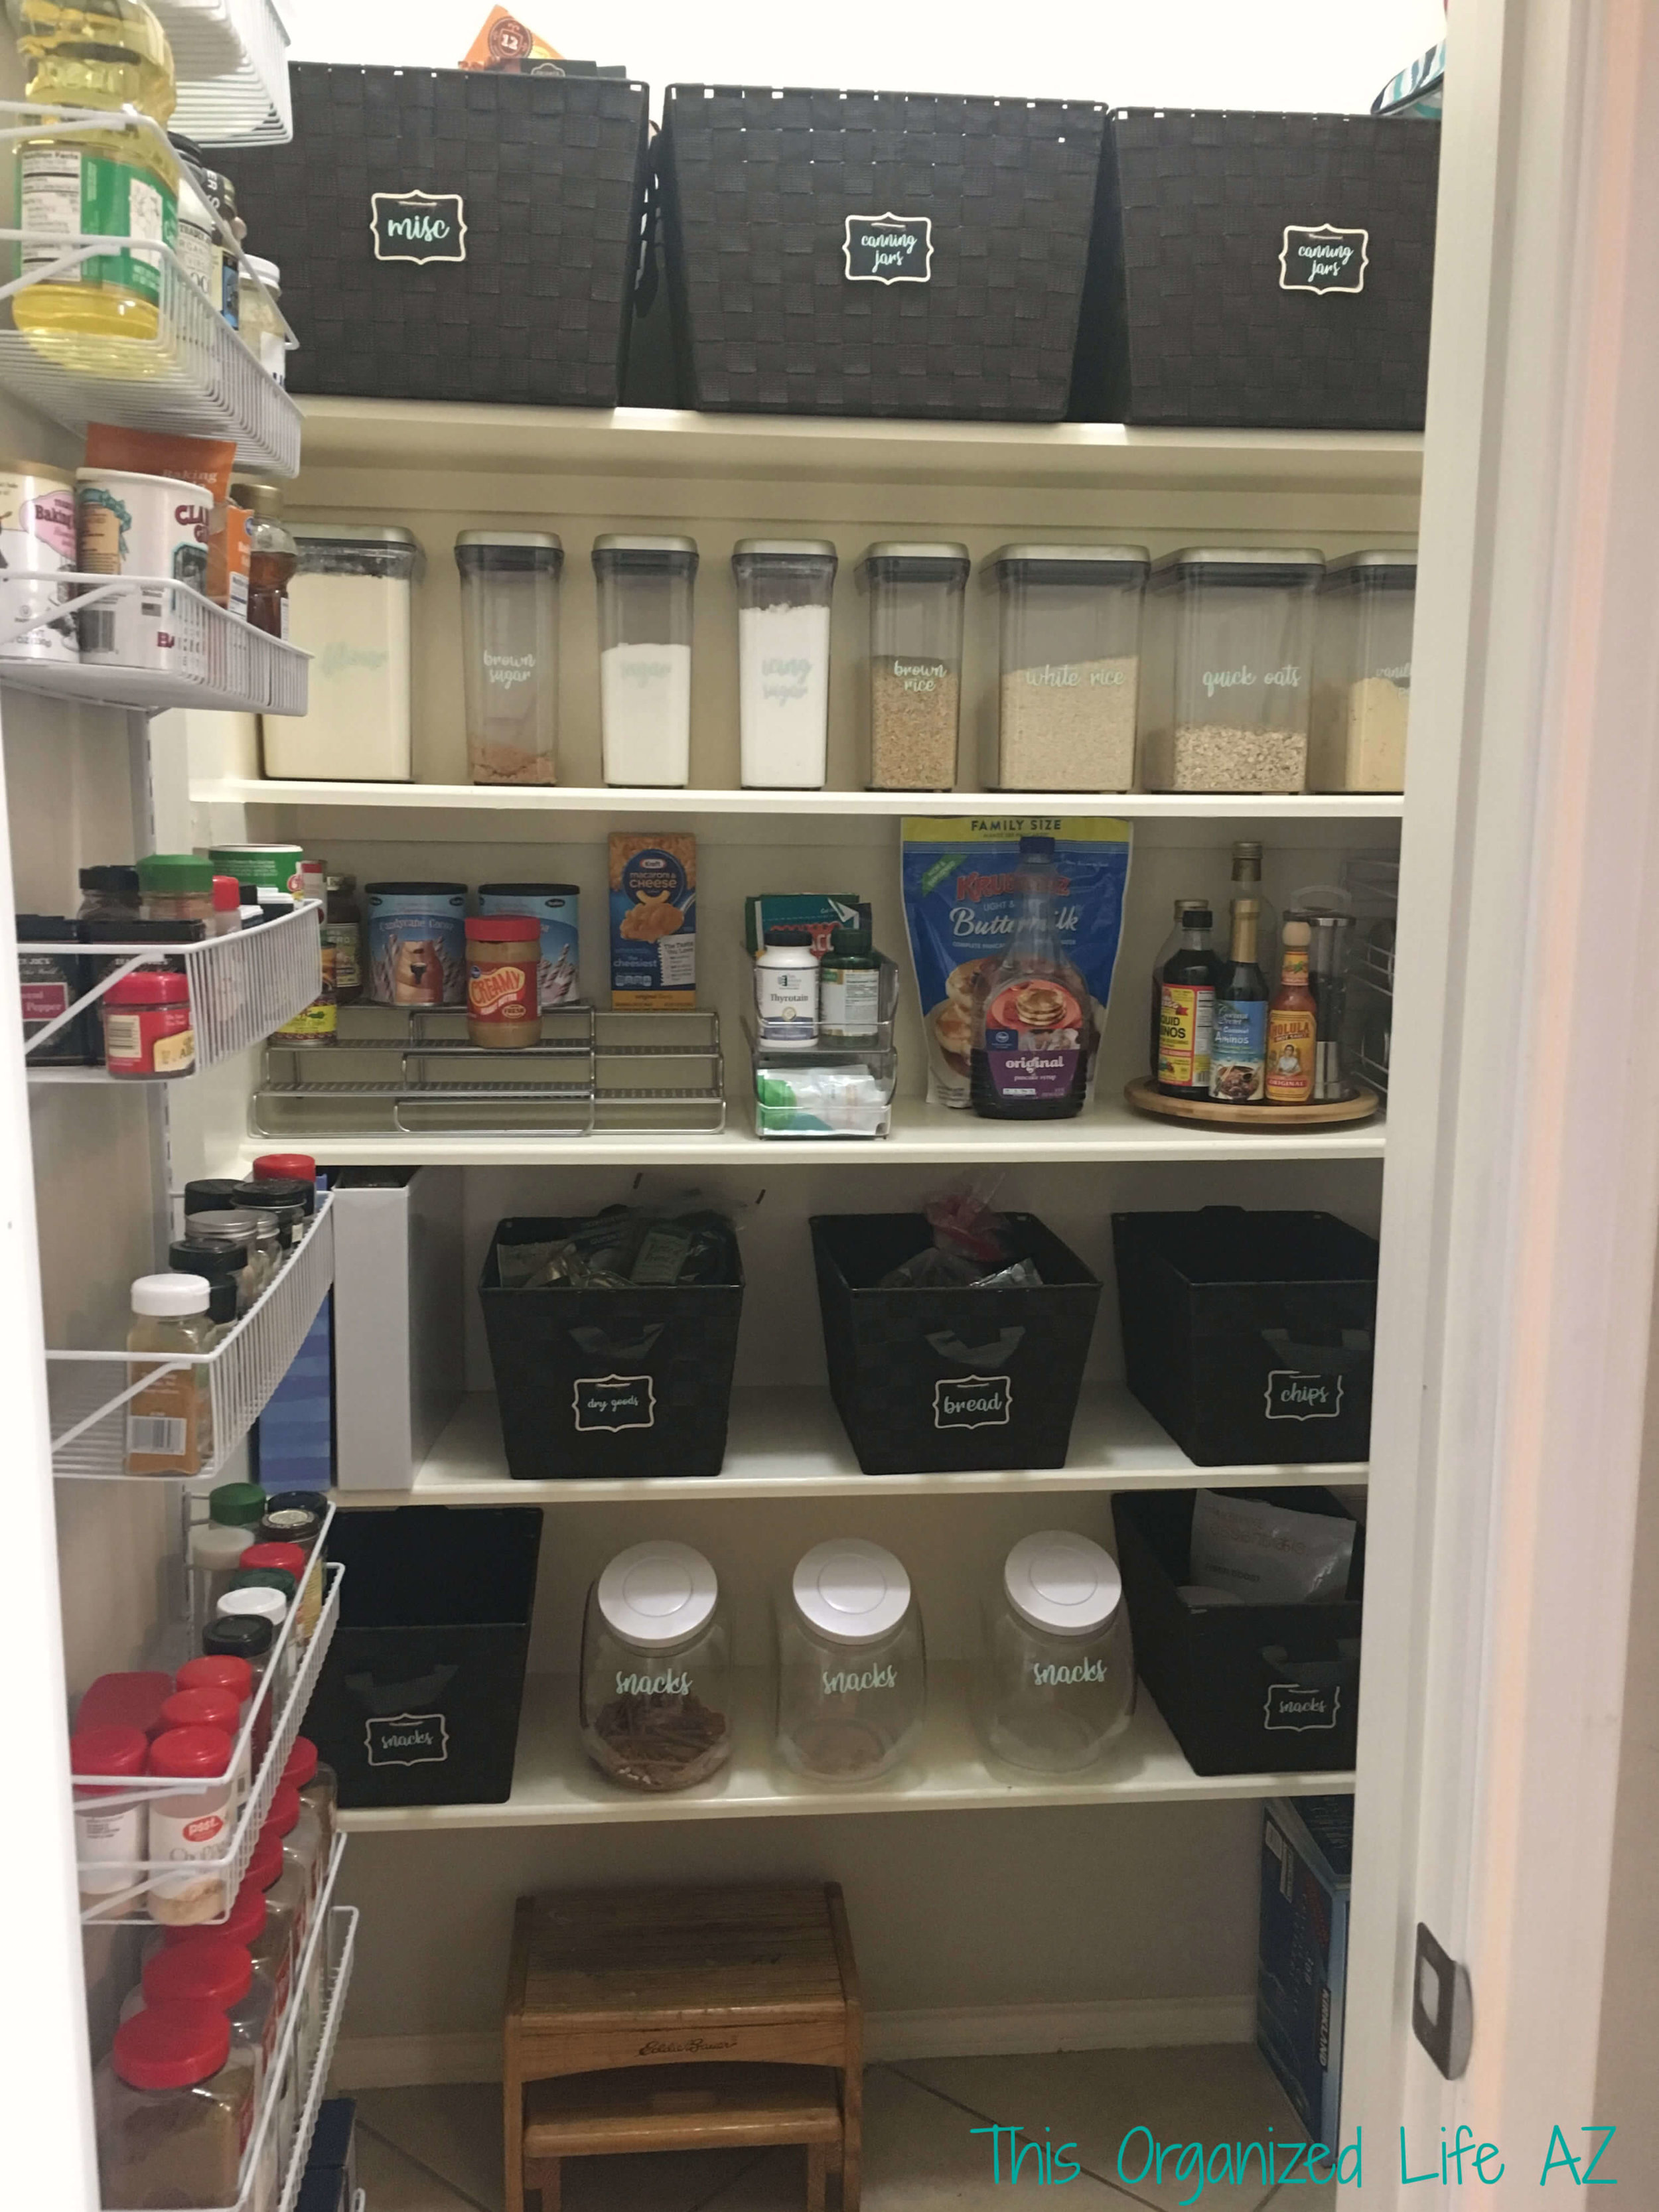 Professional-Home-Organizer-This-Organized-Life-AZ-Chandler-AZ-Kitchen-Pantry